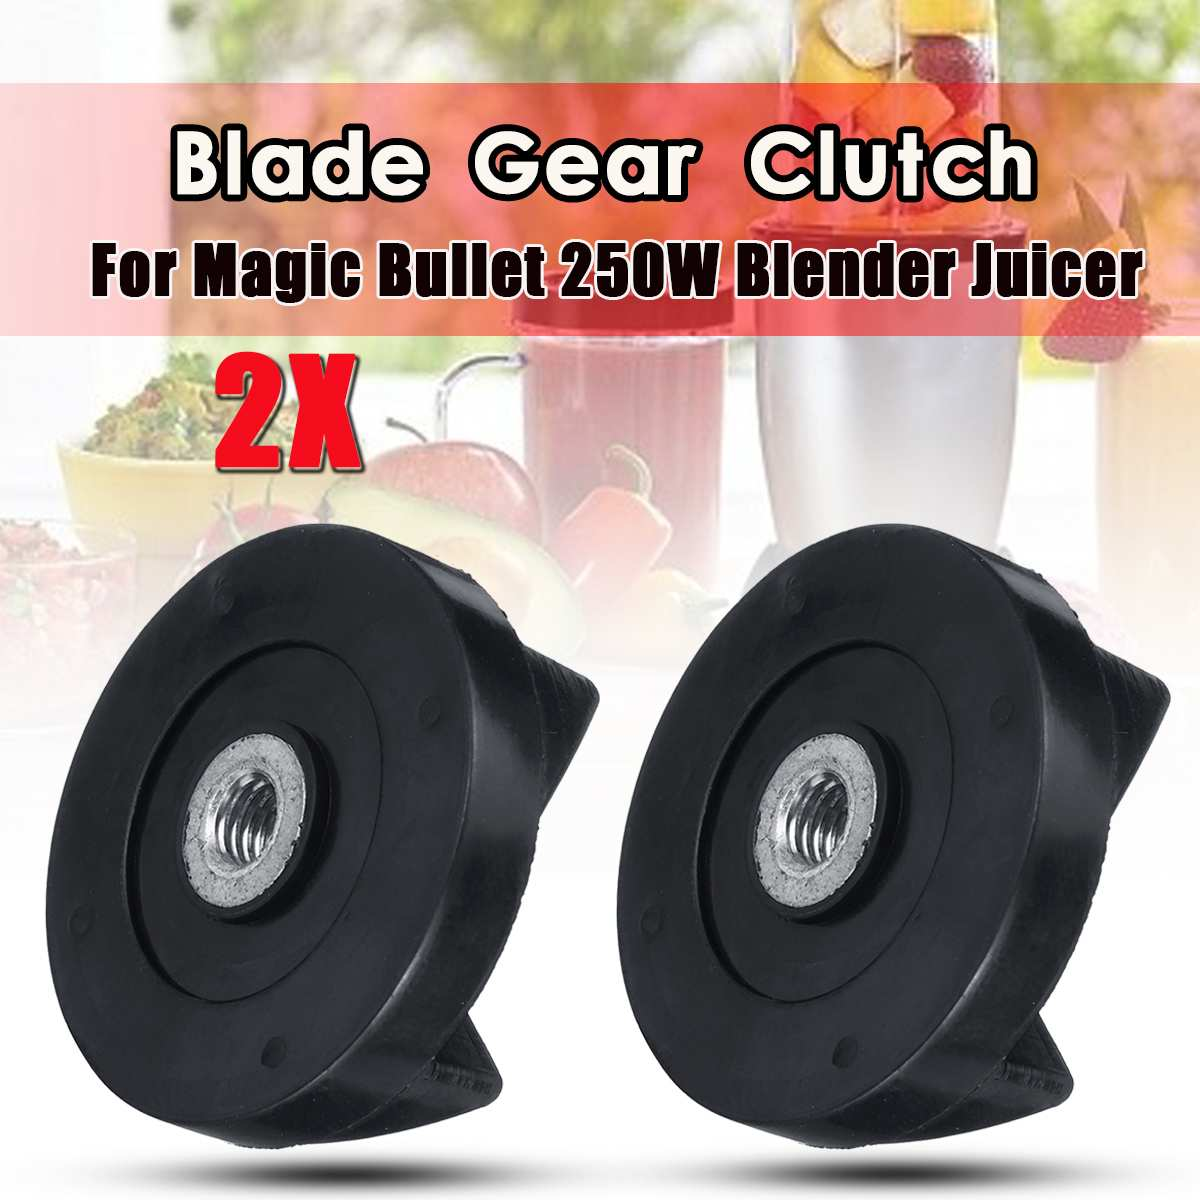 2pcs Juicer Blade Gear Clutch Replacement Black For Magic Bullet MB1001 250W